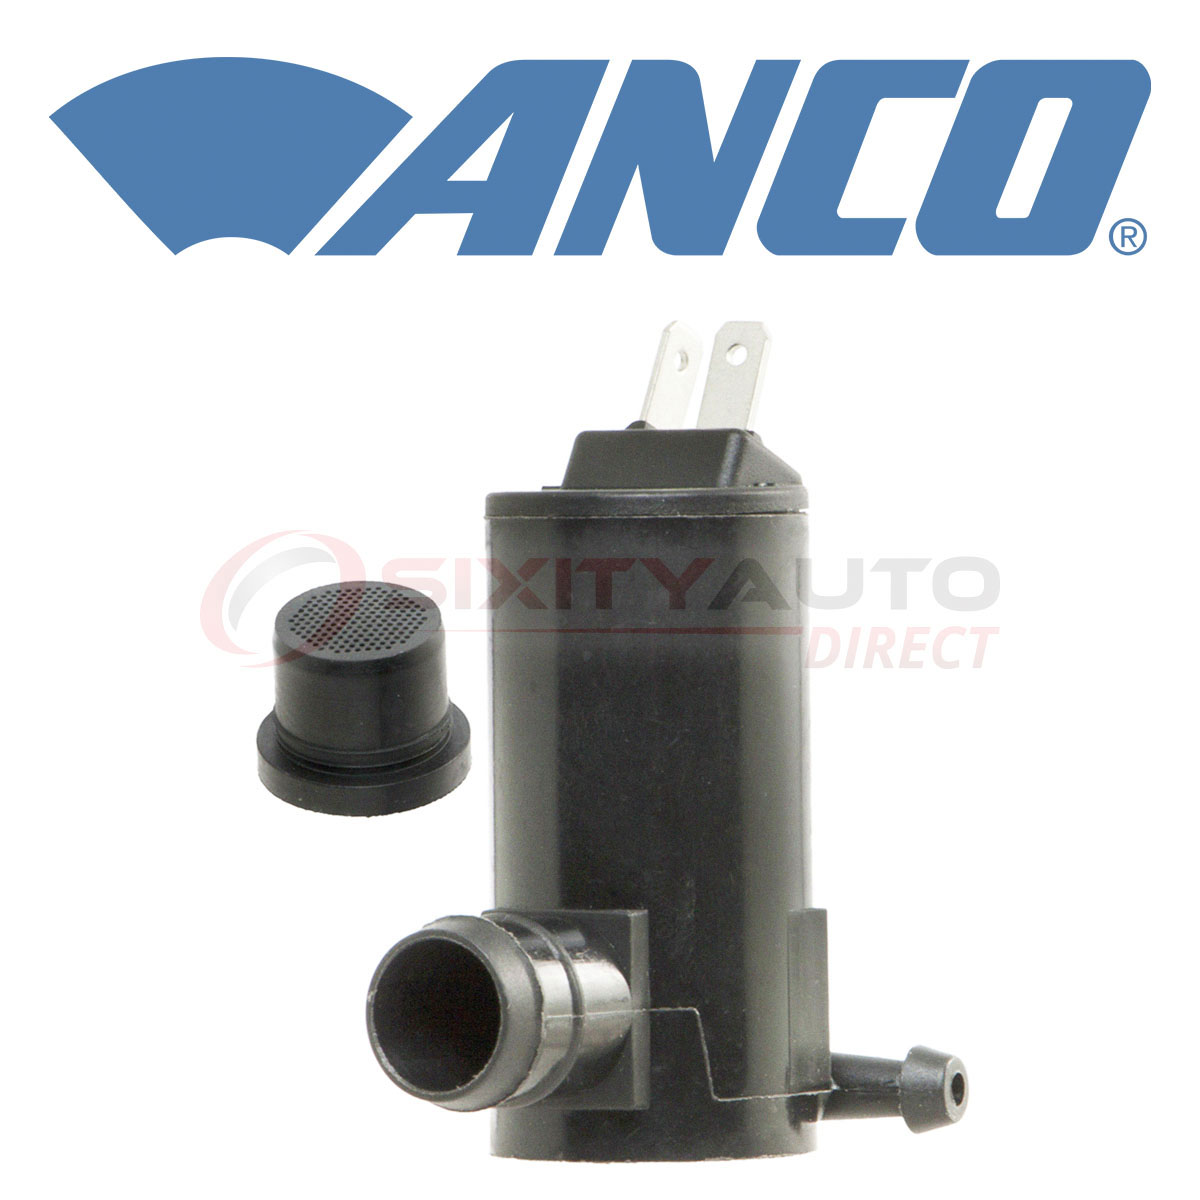 ANCO Windshield Washer Pump for 1994-1997 Ford F-350 Wiper Fluid gn